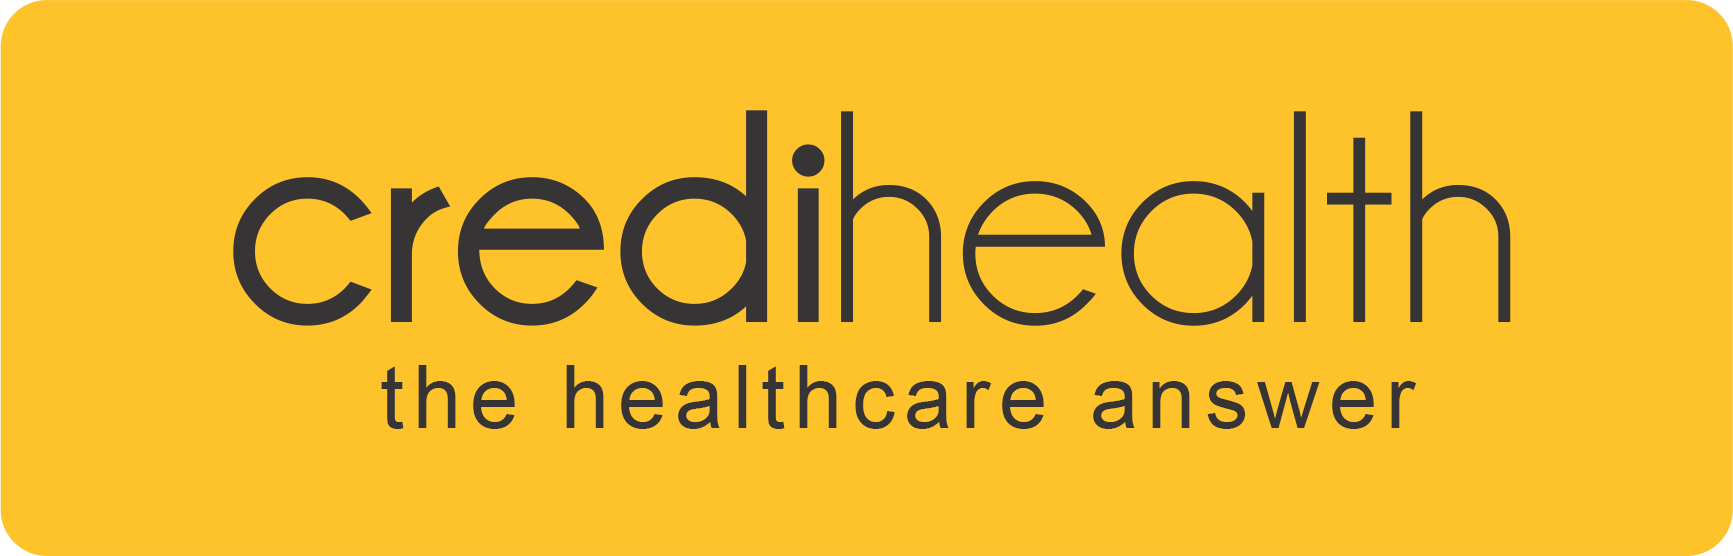 credihealth-1732x556-yellow